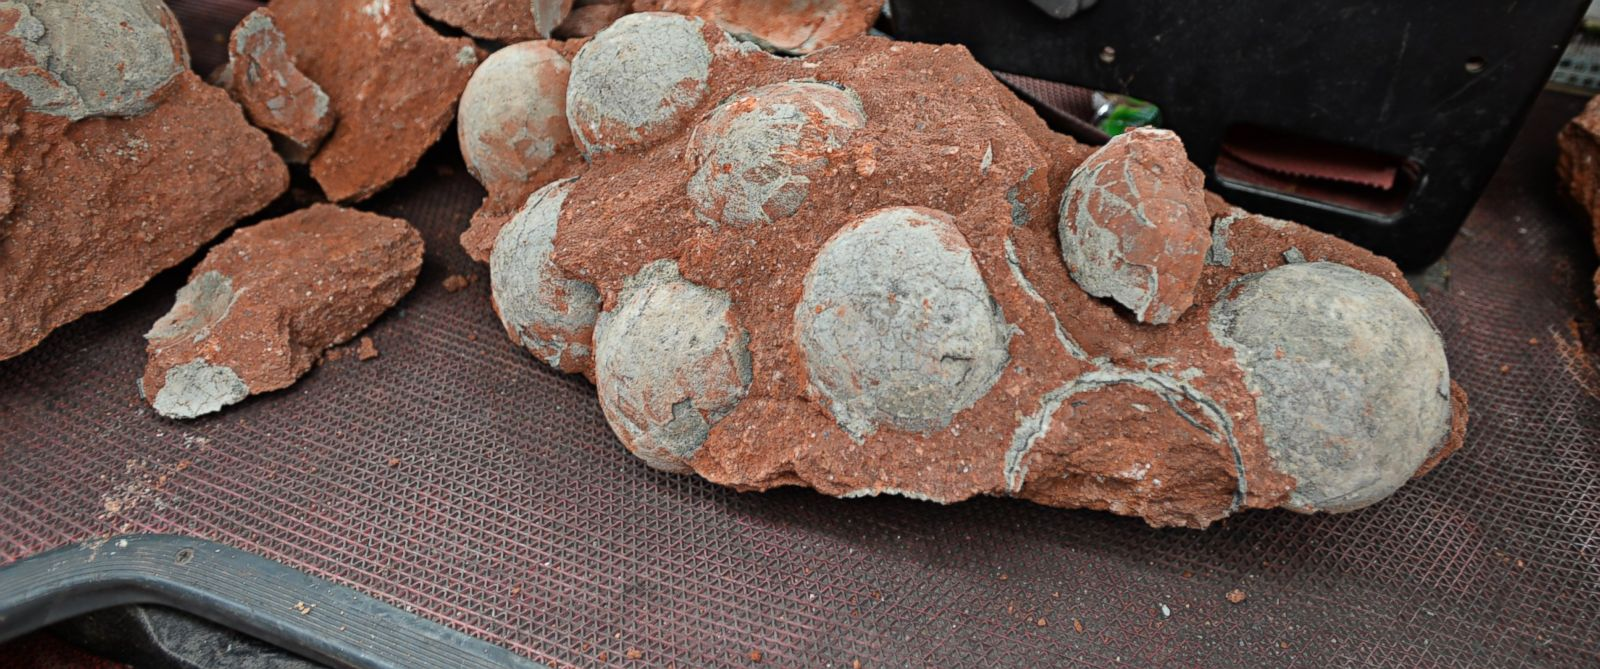 PHOTO: Fossilized dinosaur eggs were discovered during roadwork in Heyuan City, China on April 19, 2015.